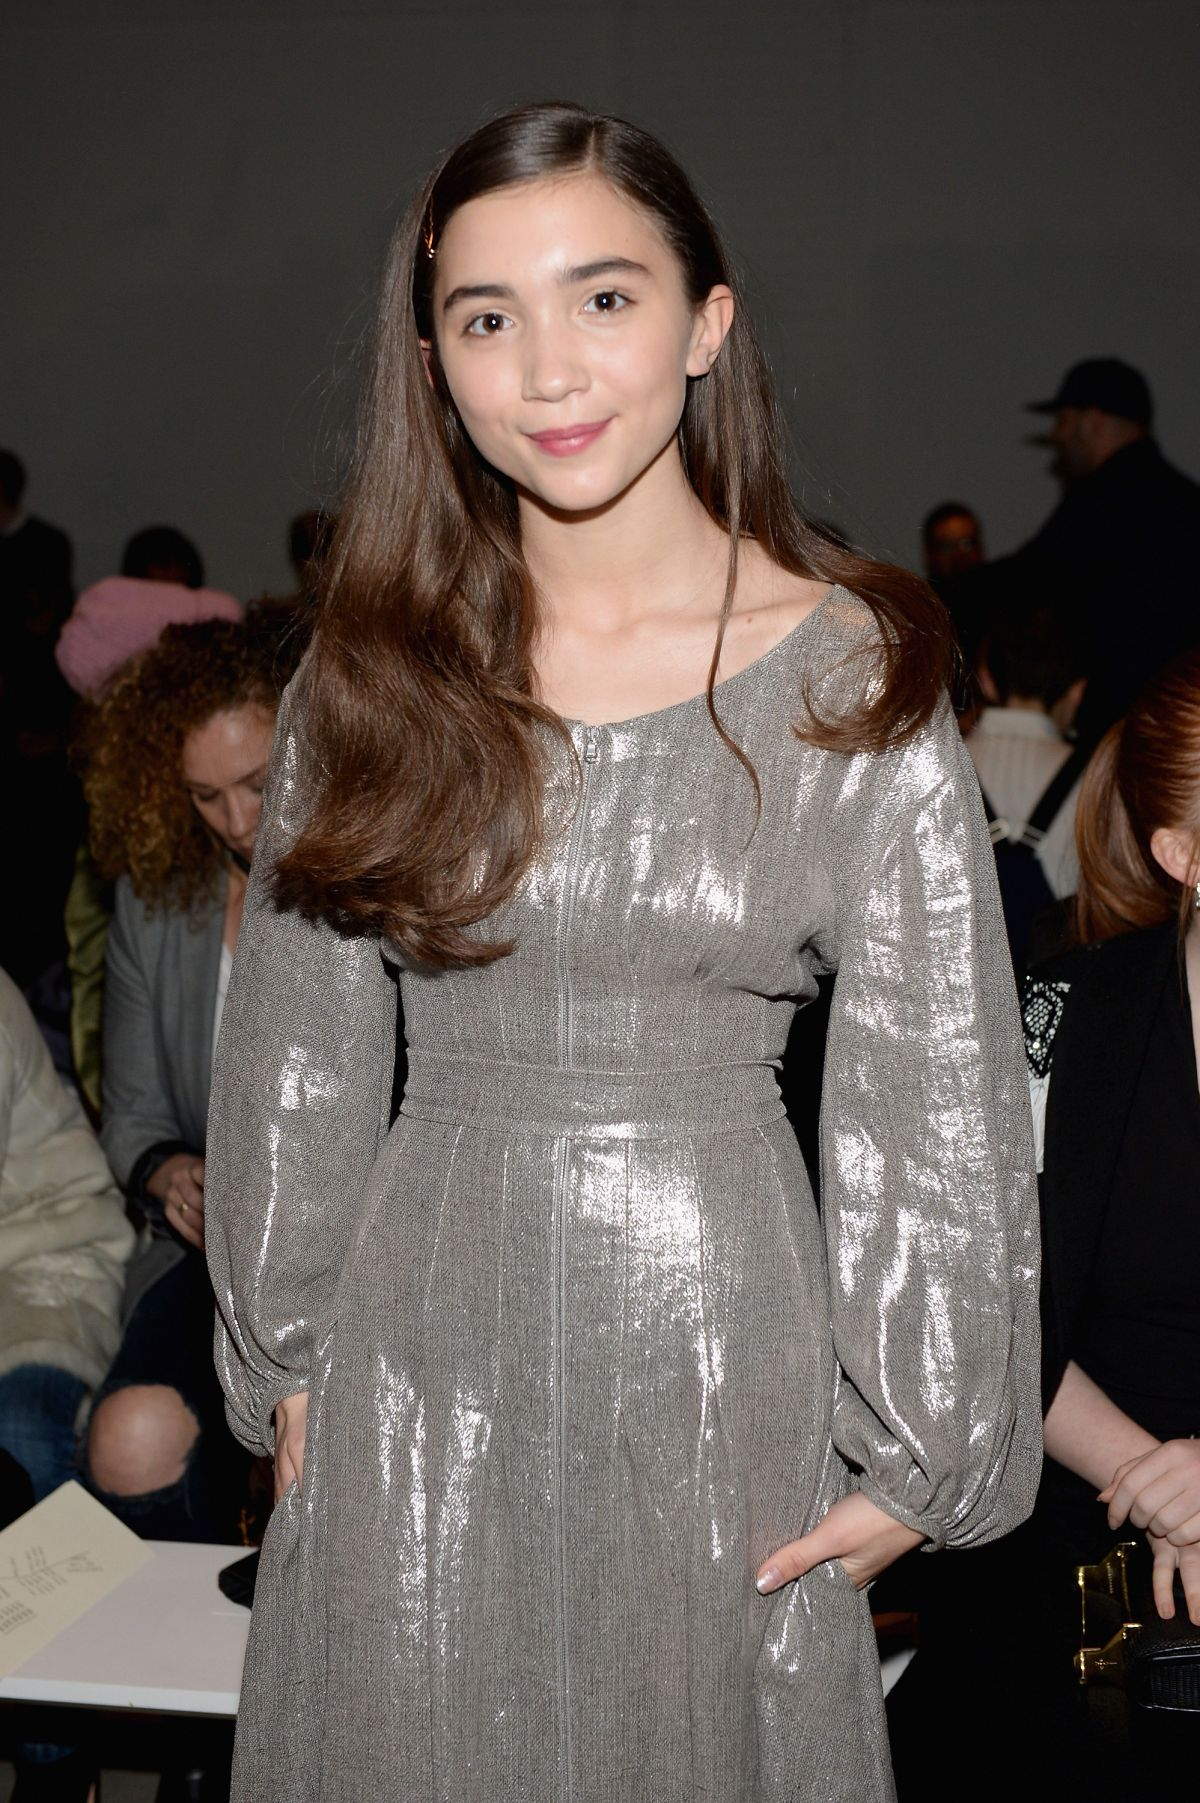 ROWAN BLANCHARD at Creatures of the Wind Fashion Show in New York 02/11/2017